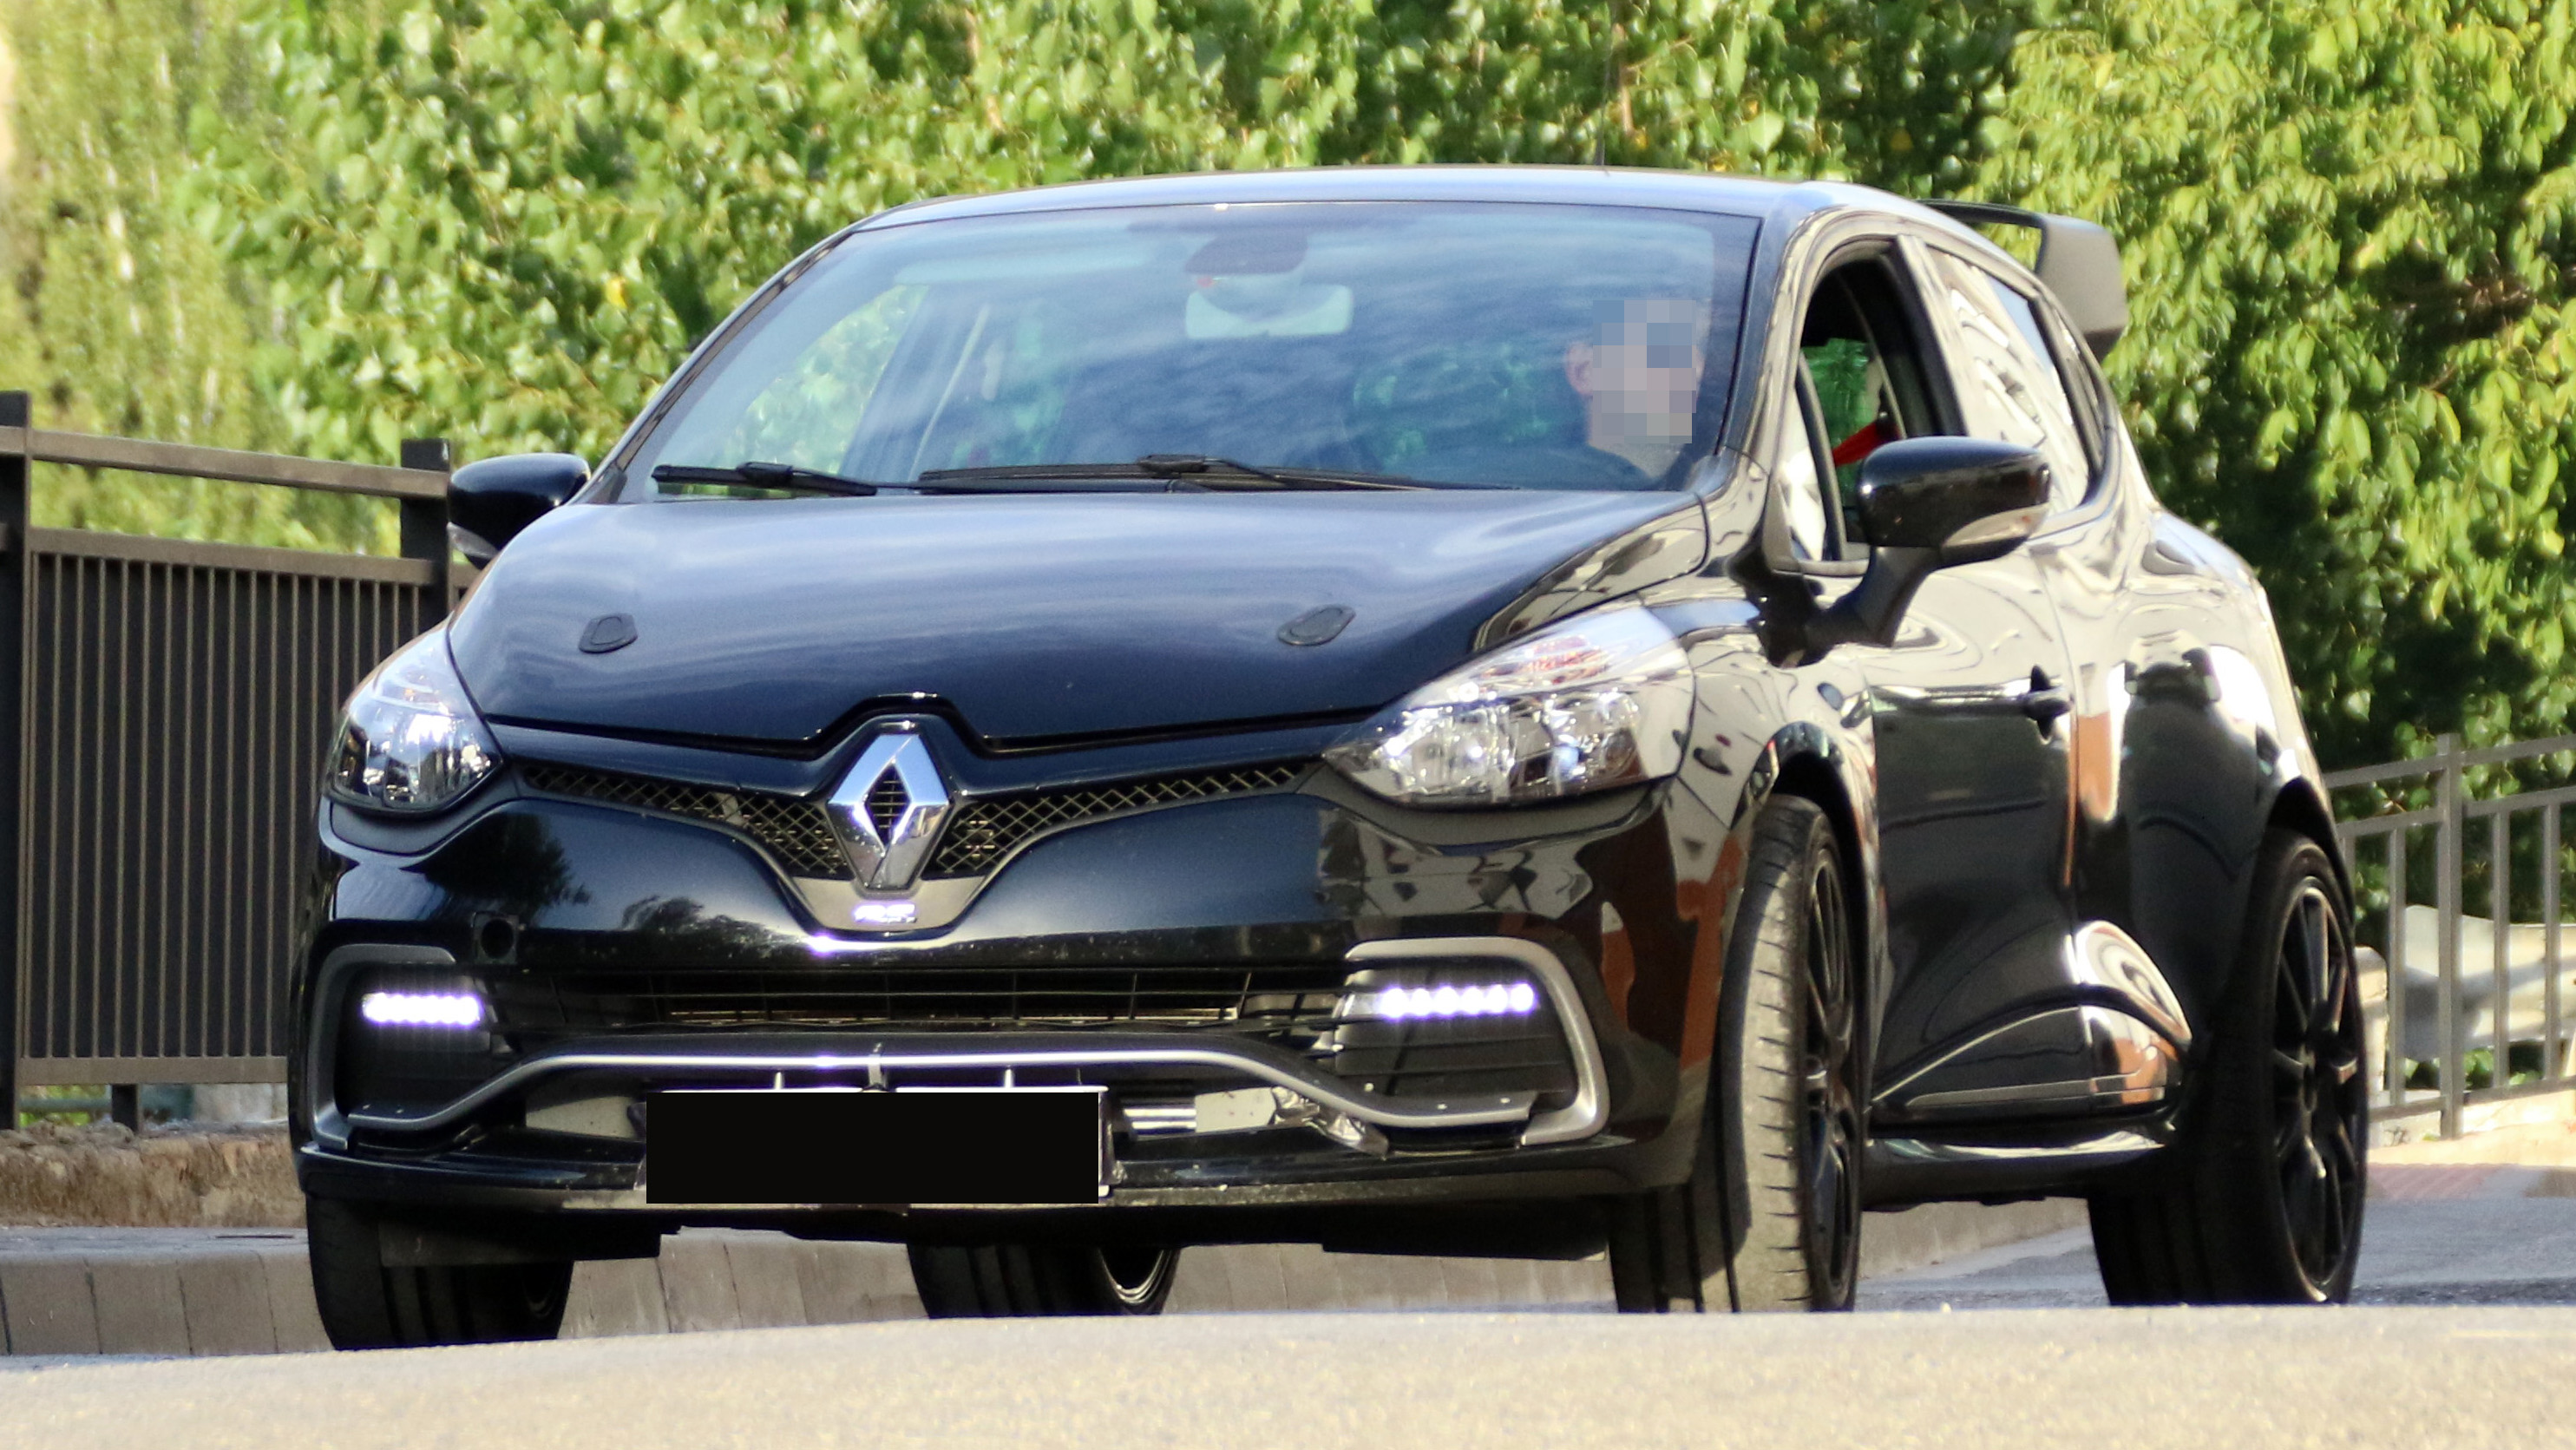 2018 renault. interesting 2018 the fourthgeneration renault clio was unveiled at the 2012 paris motor  show highlighted by a significantly redesigned body and interior new hatchback  in 2018 renault